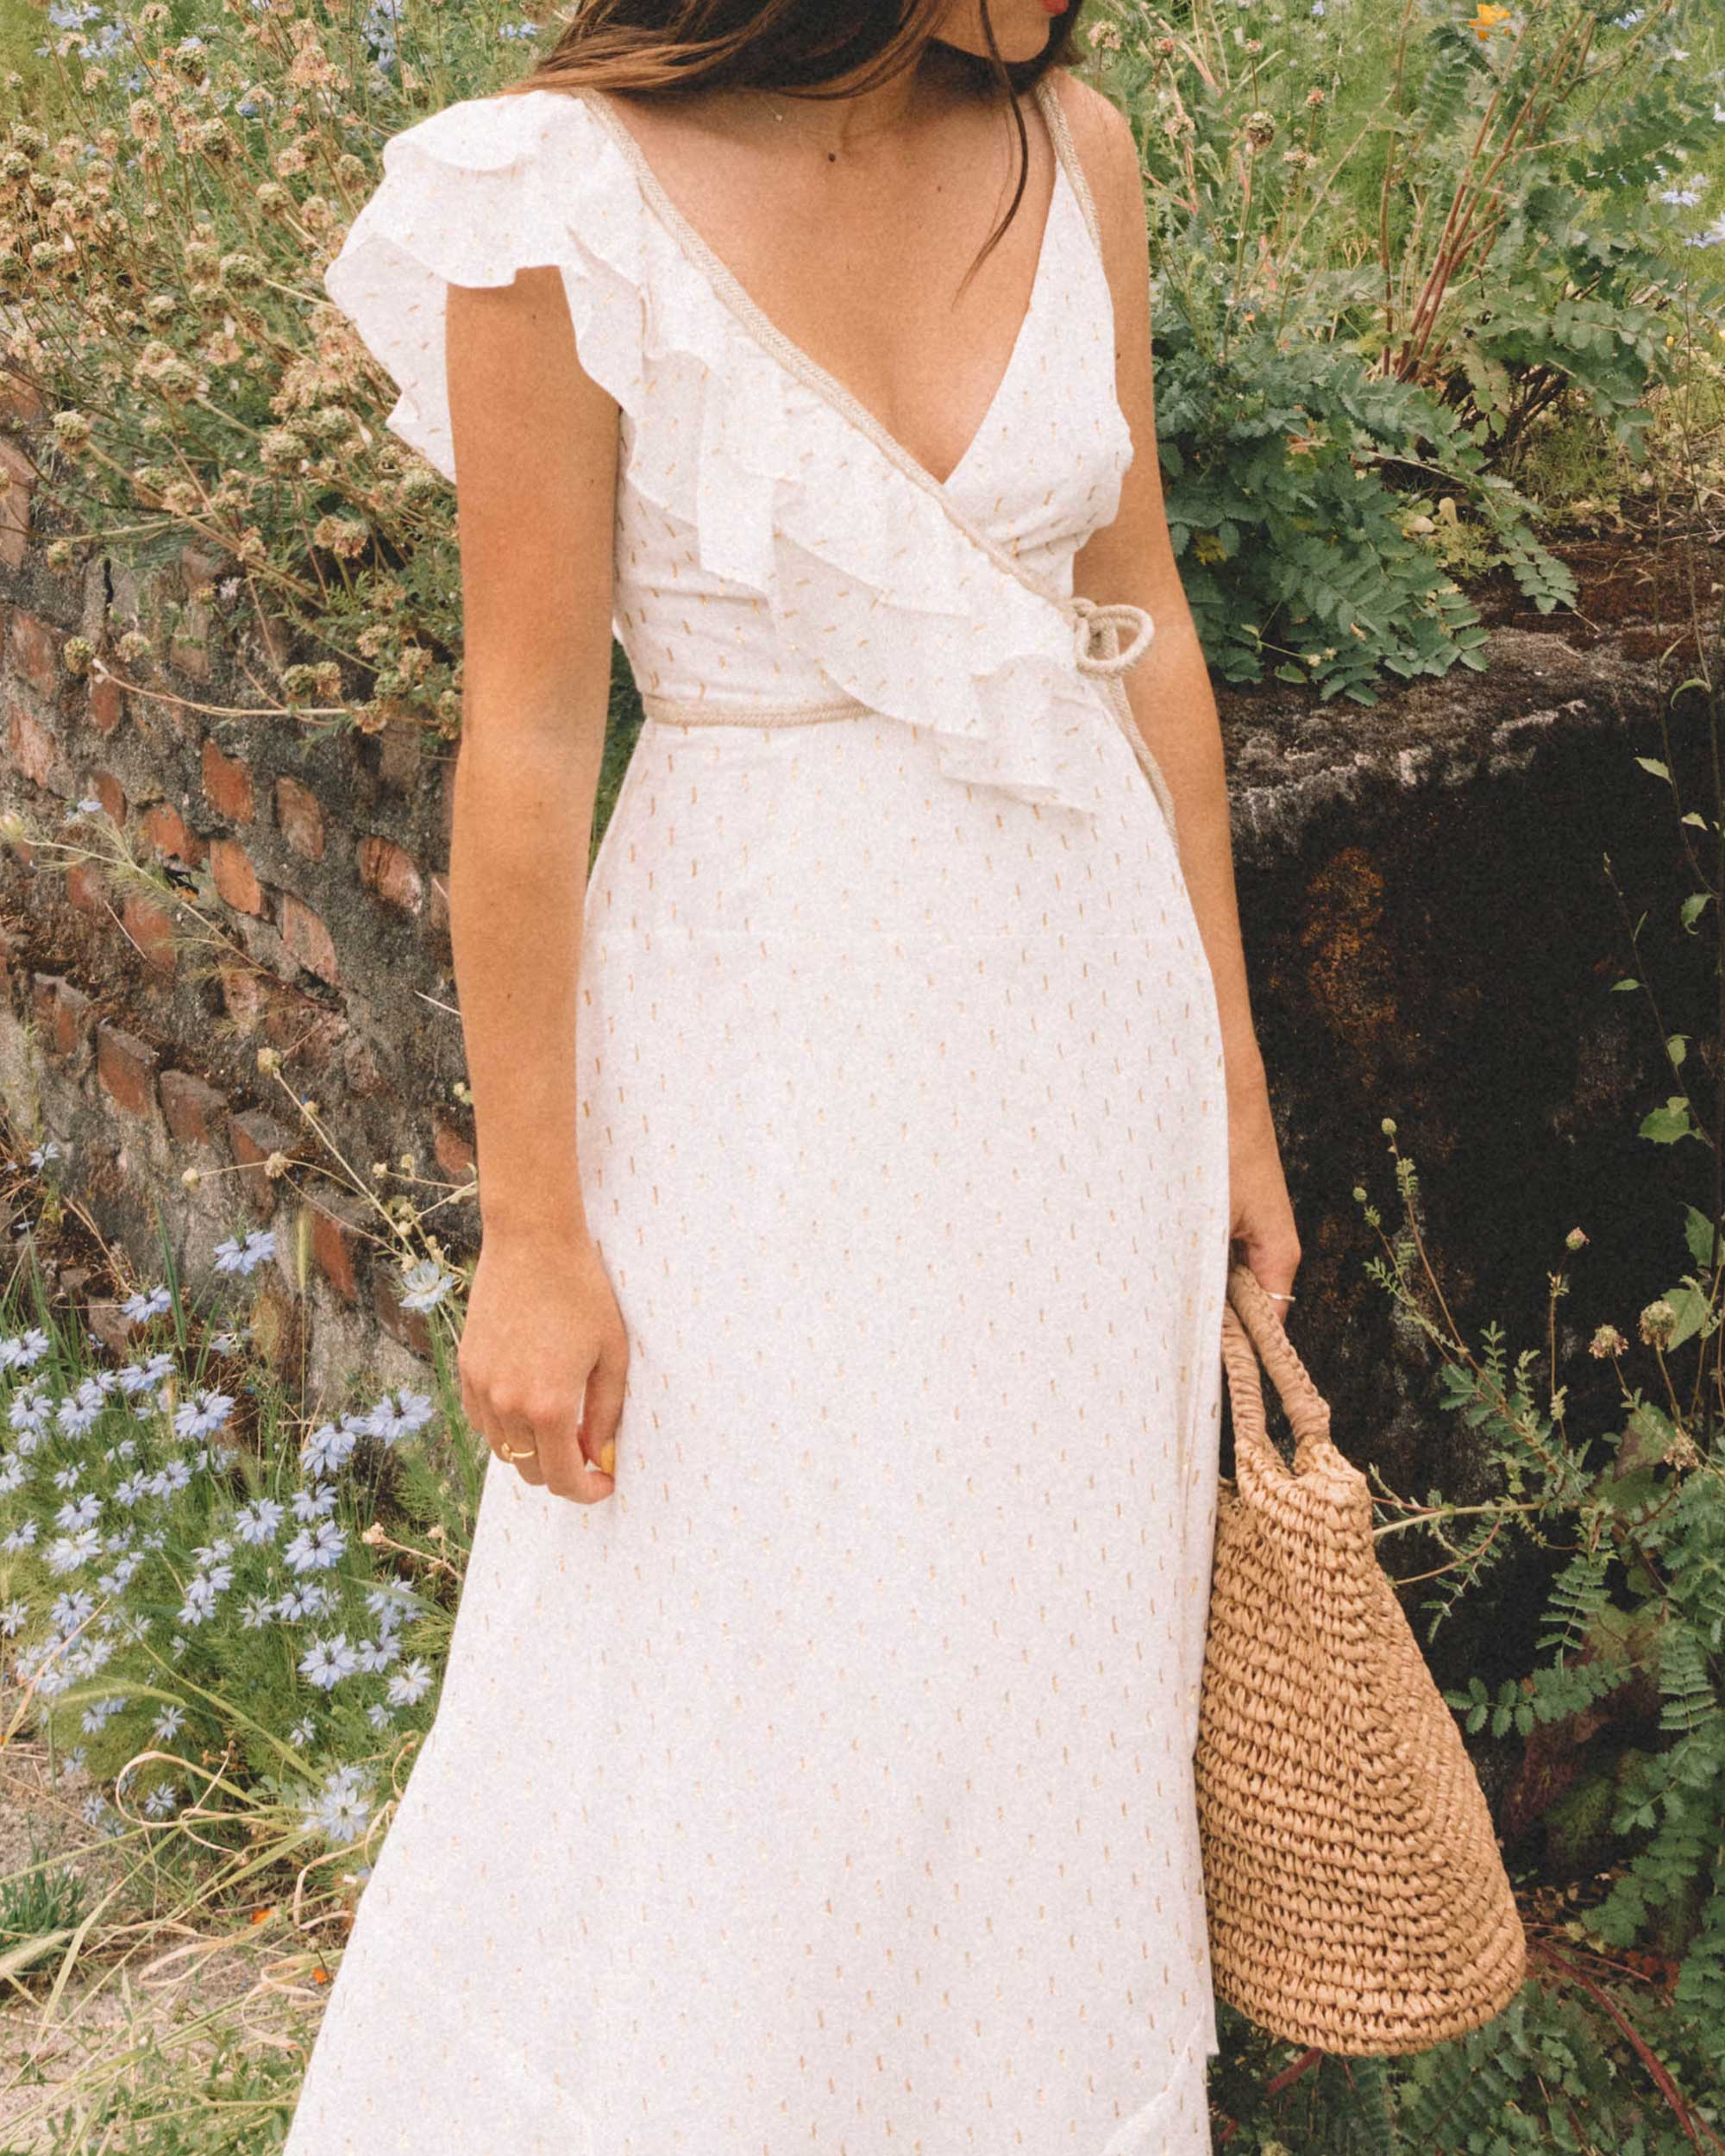 Sarah Butler of Sarah Styles Seattle wears BCBGMAXAZRIA White Asymmetric Midi Wrap Dress for the perfect summer outfit | @sarahchristine -4.jpg